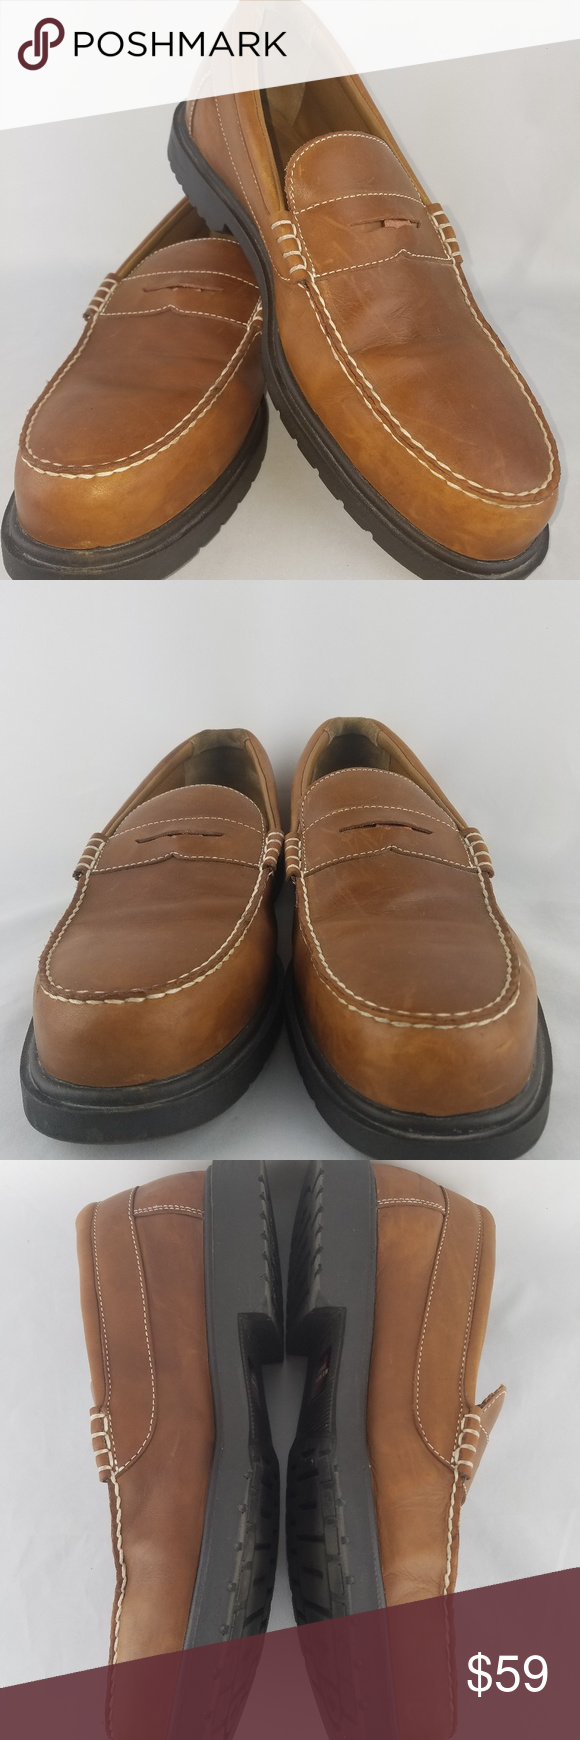 d2e38b8b6a8f Red Wing 13 Penny Loafer Shoes Slip-on Penny loafers by Red Wing Brown  Slip-on Leather upper Red Wing Shoes Shoes Loafers   Slip-Ons